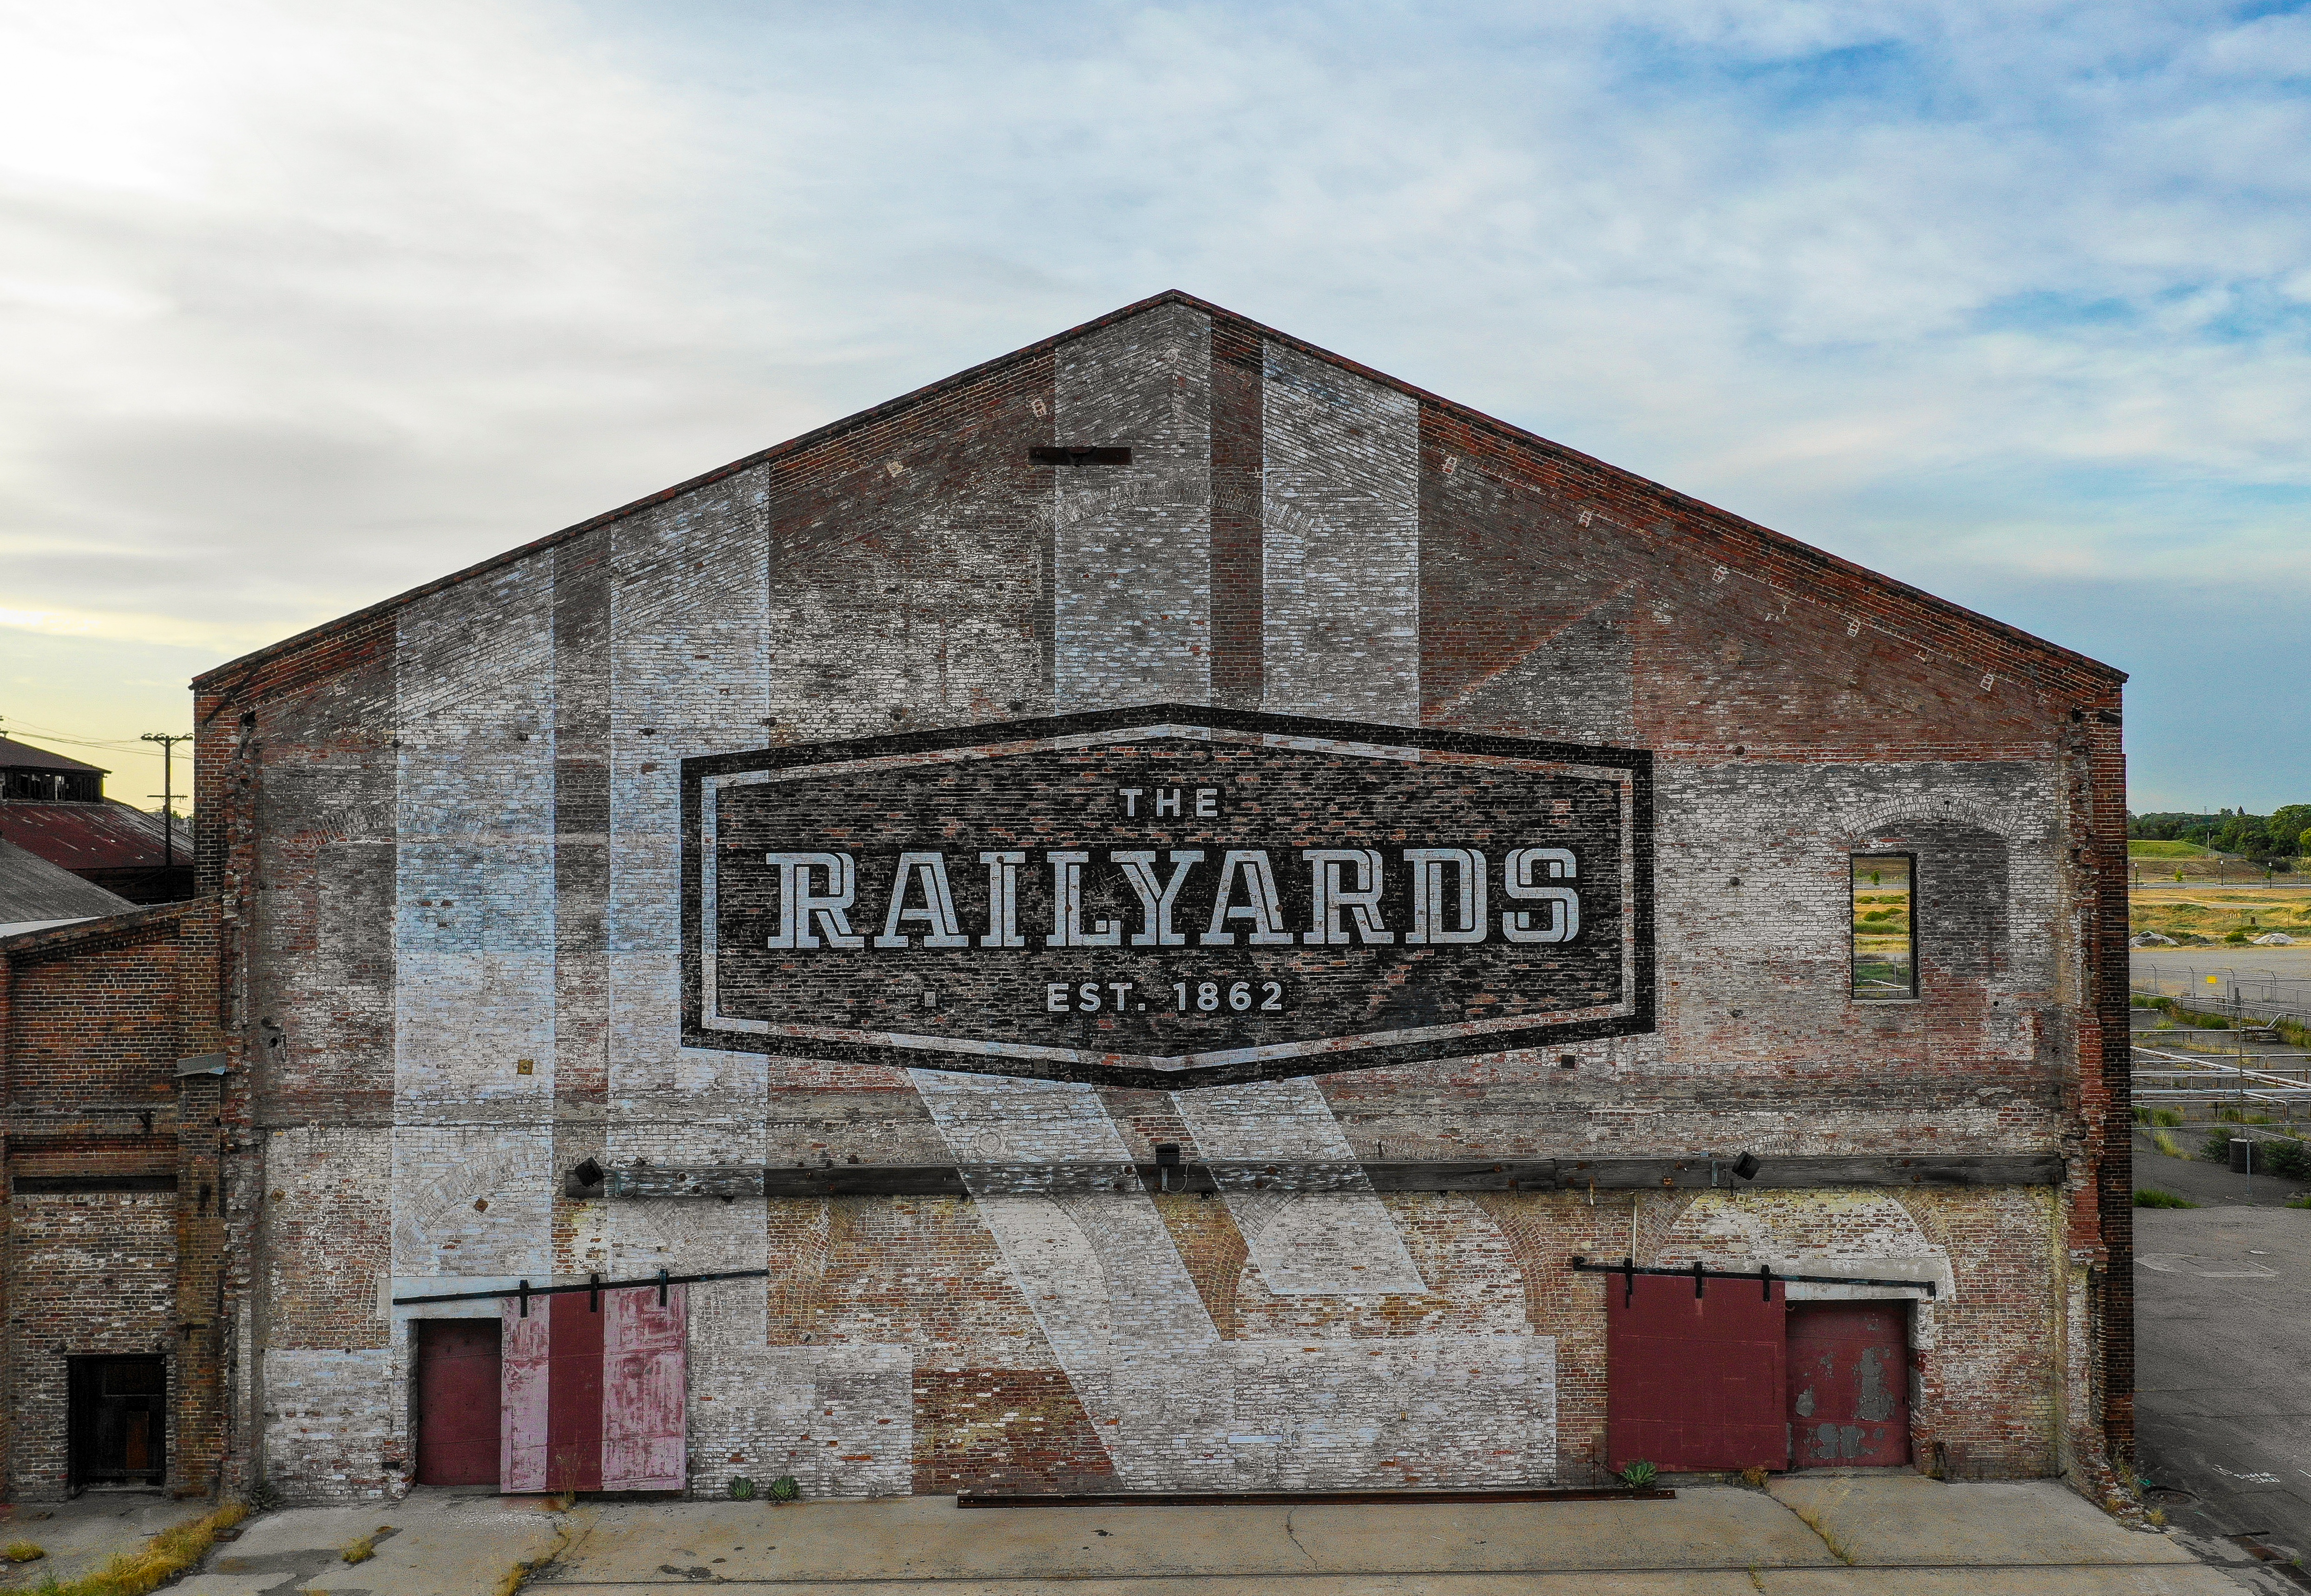 Sacramento, California's booming downtown may double in size with Railyards project